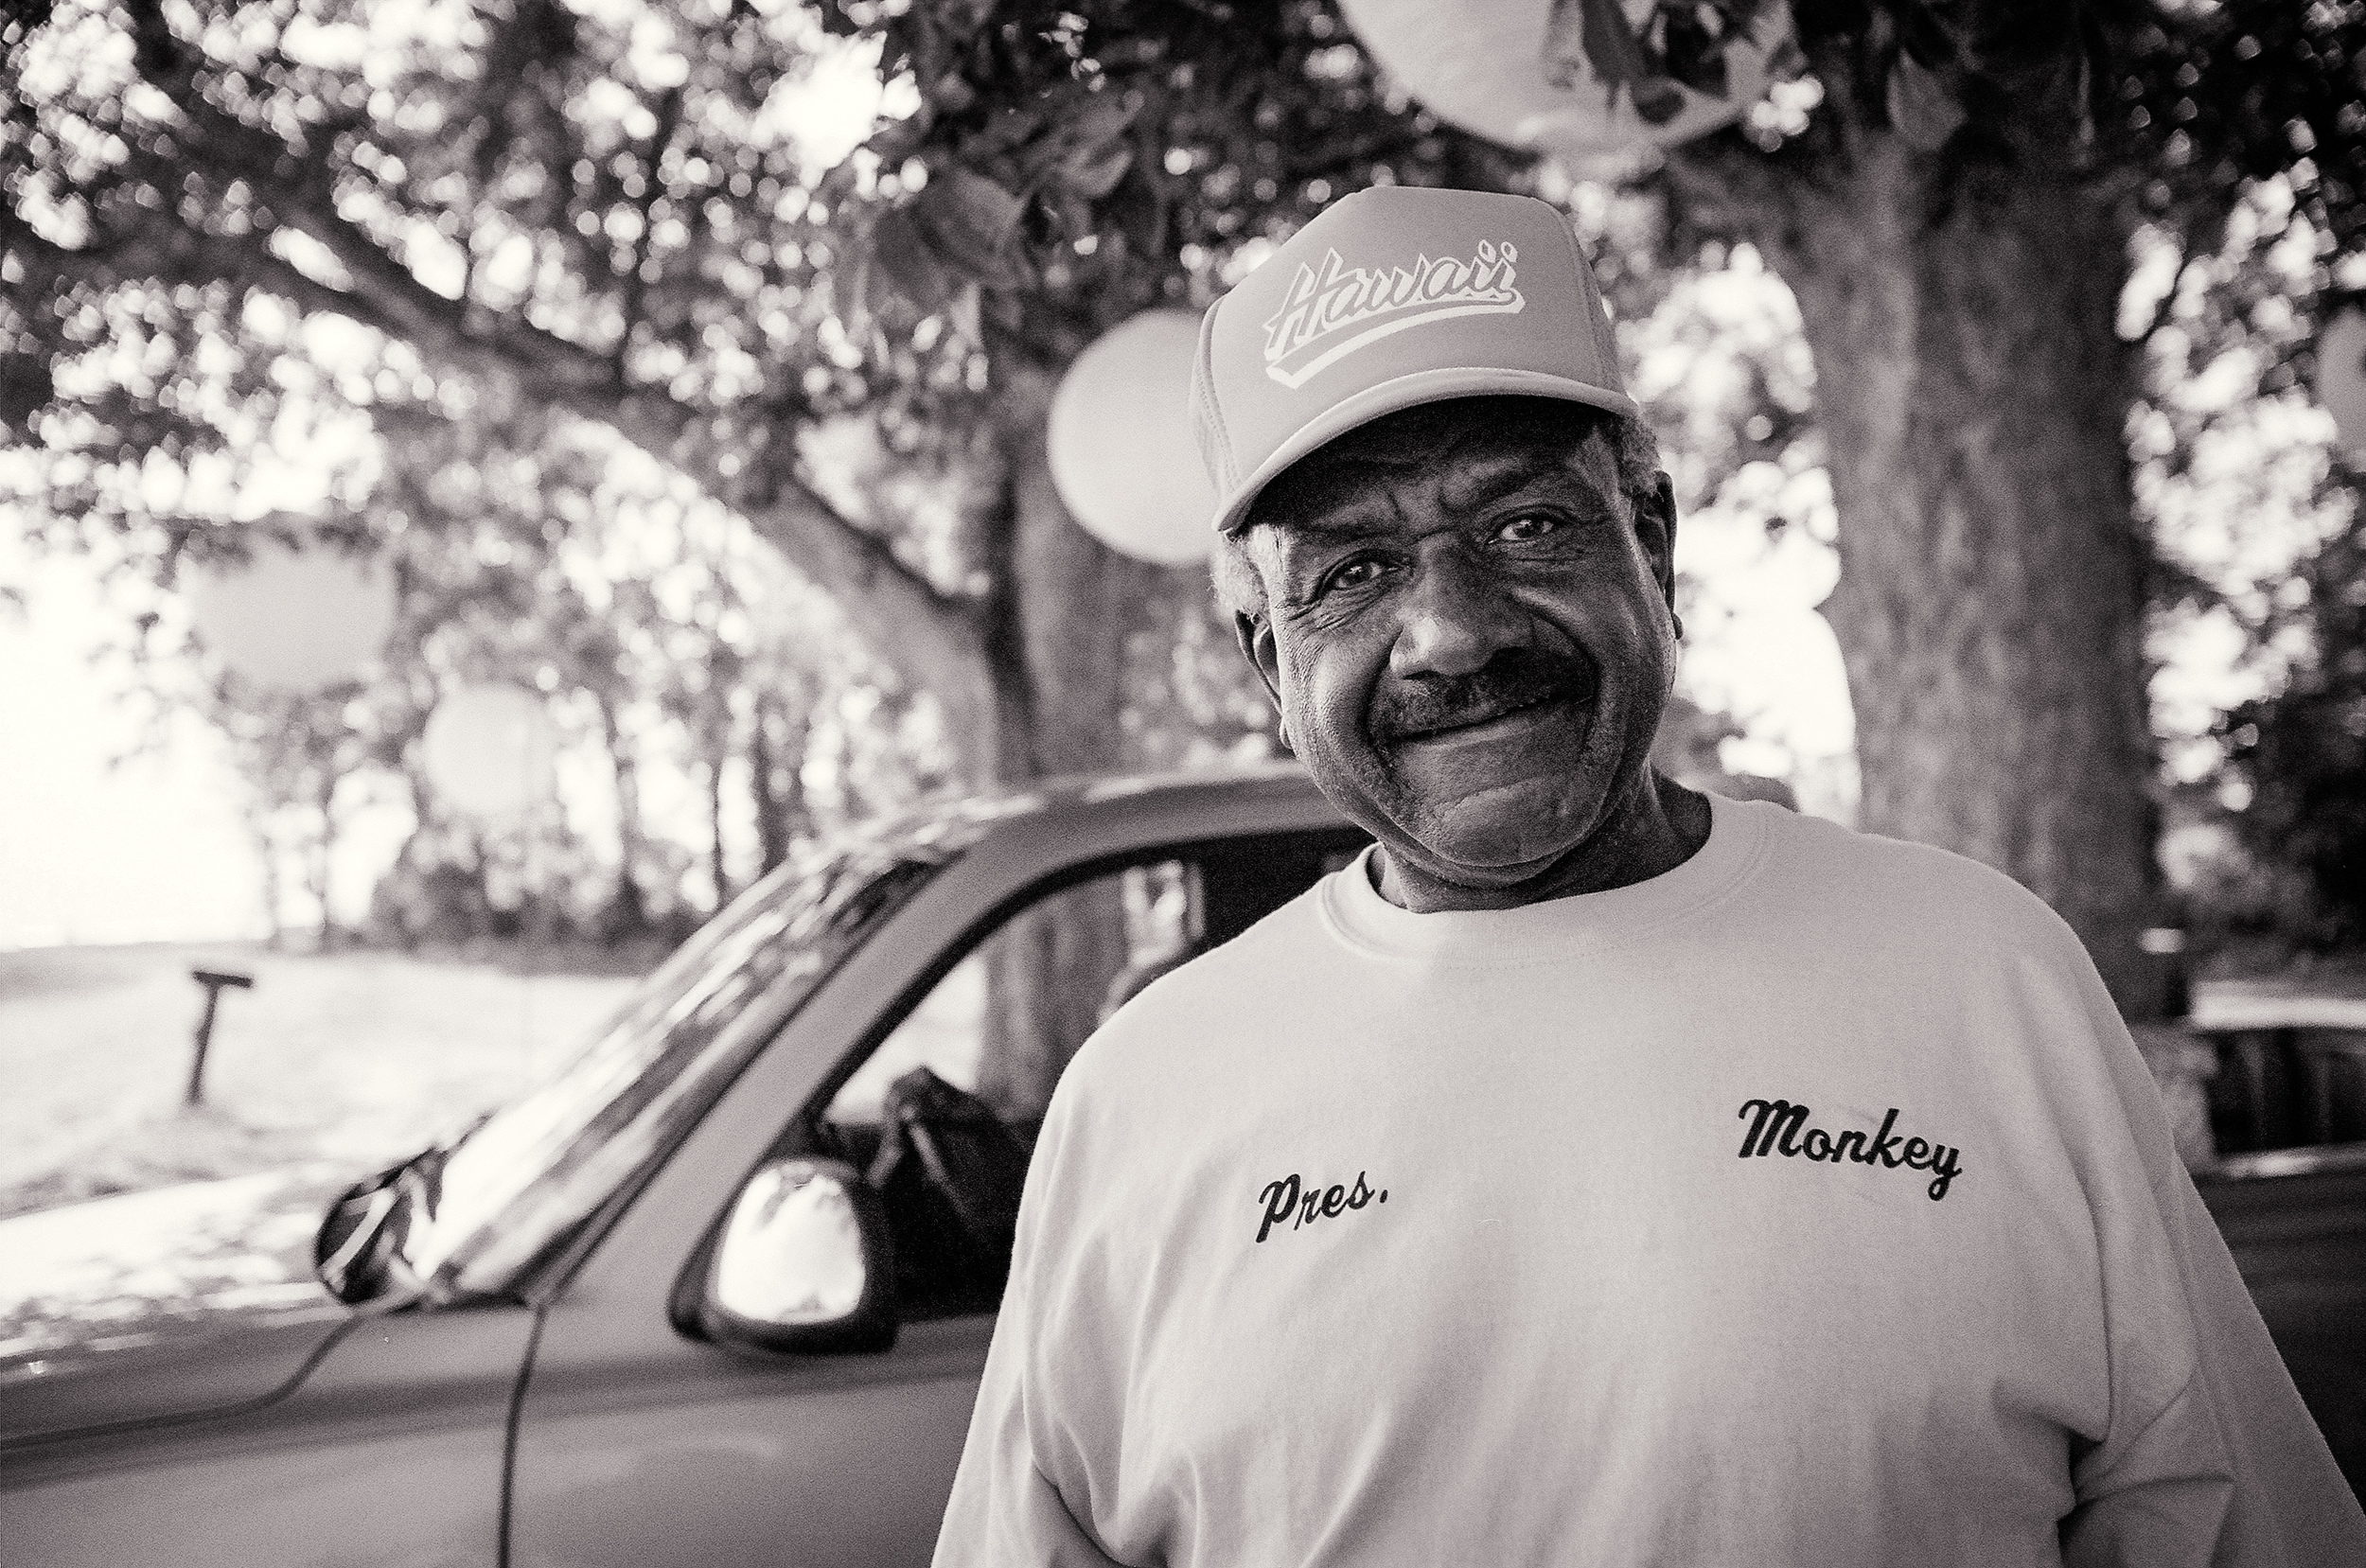 Willie, wearing a t-shirt with his name emblazoned on it, greets me outside his juke joint, before the wedding.